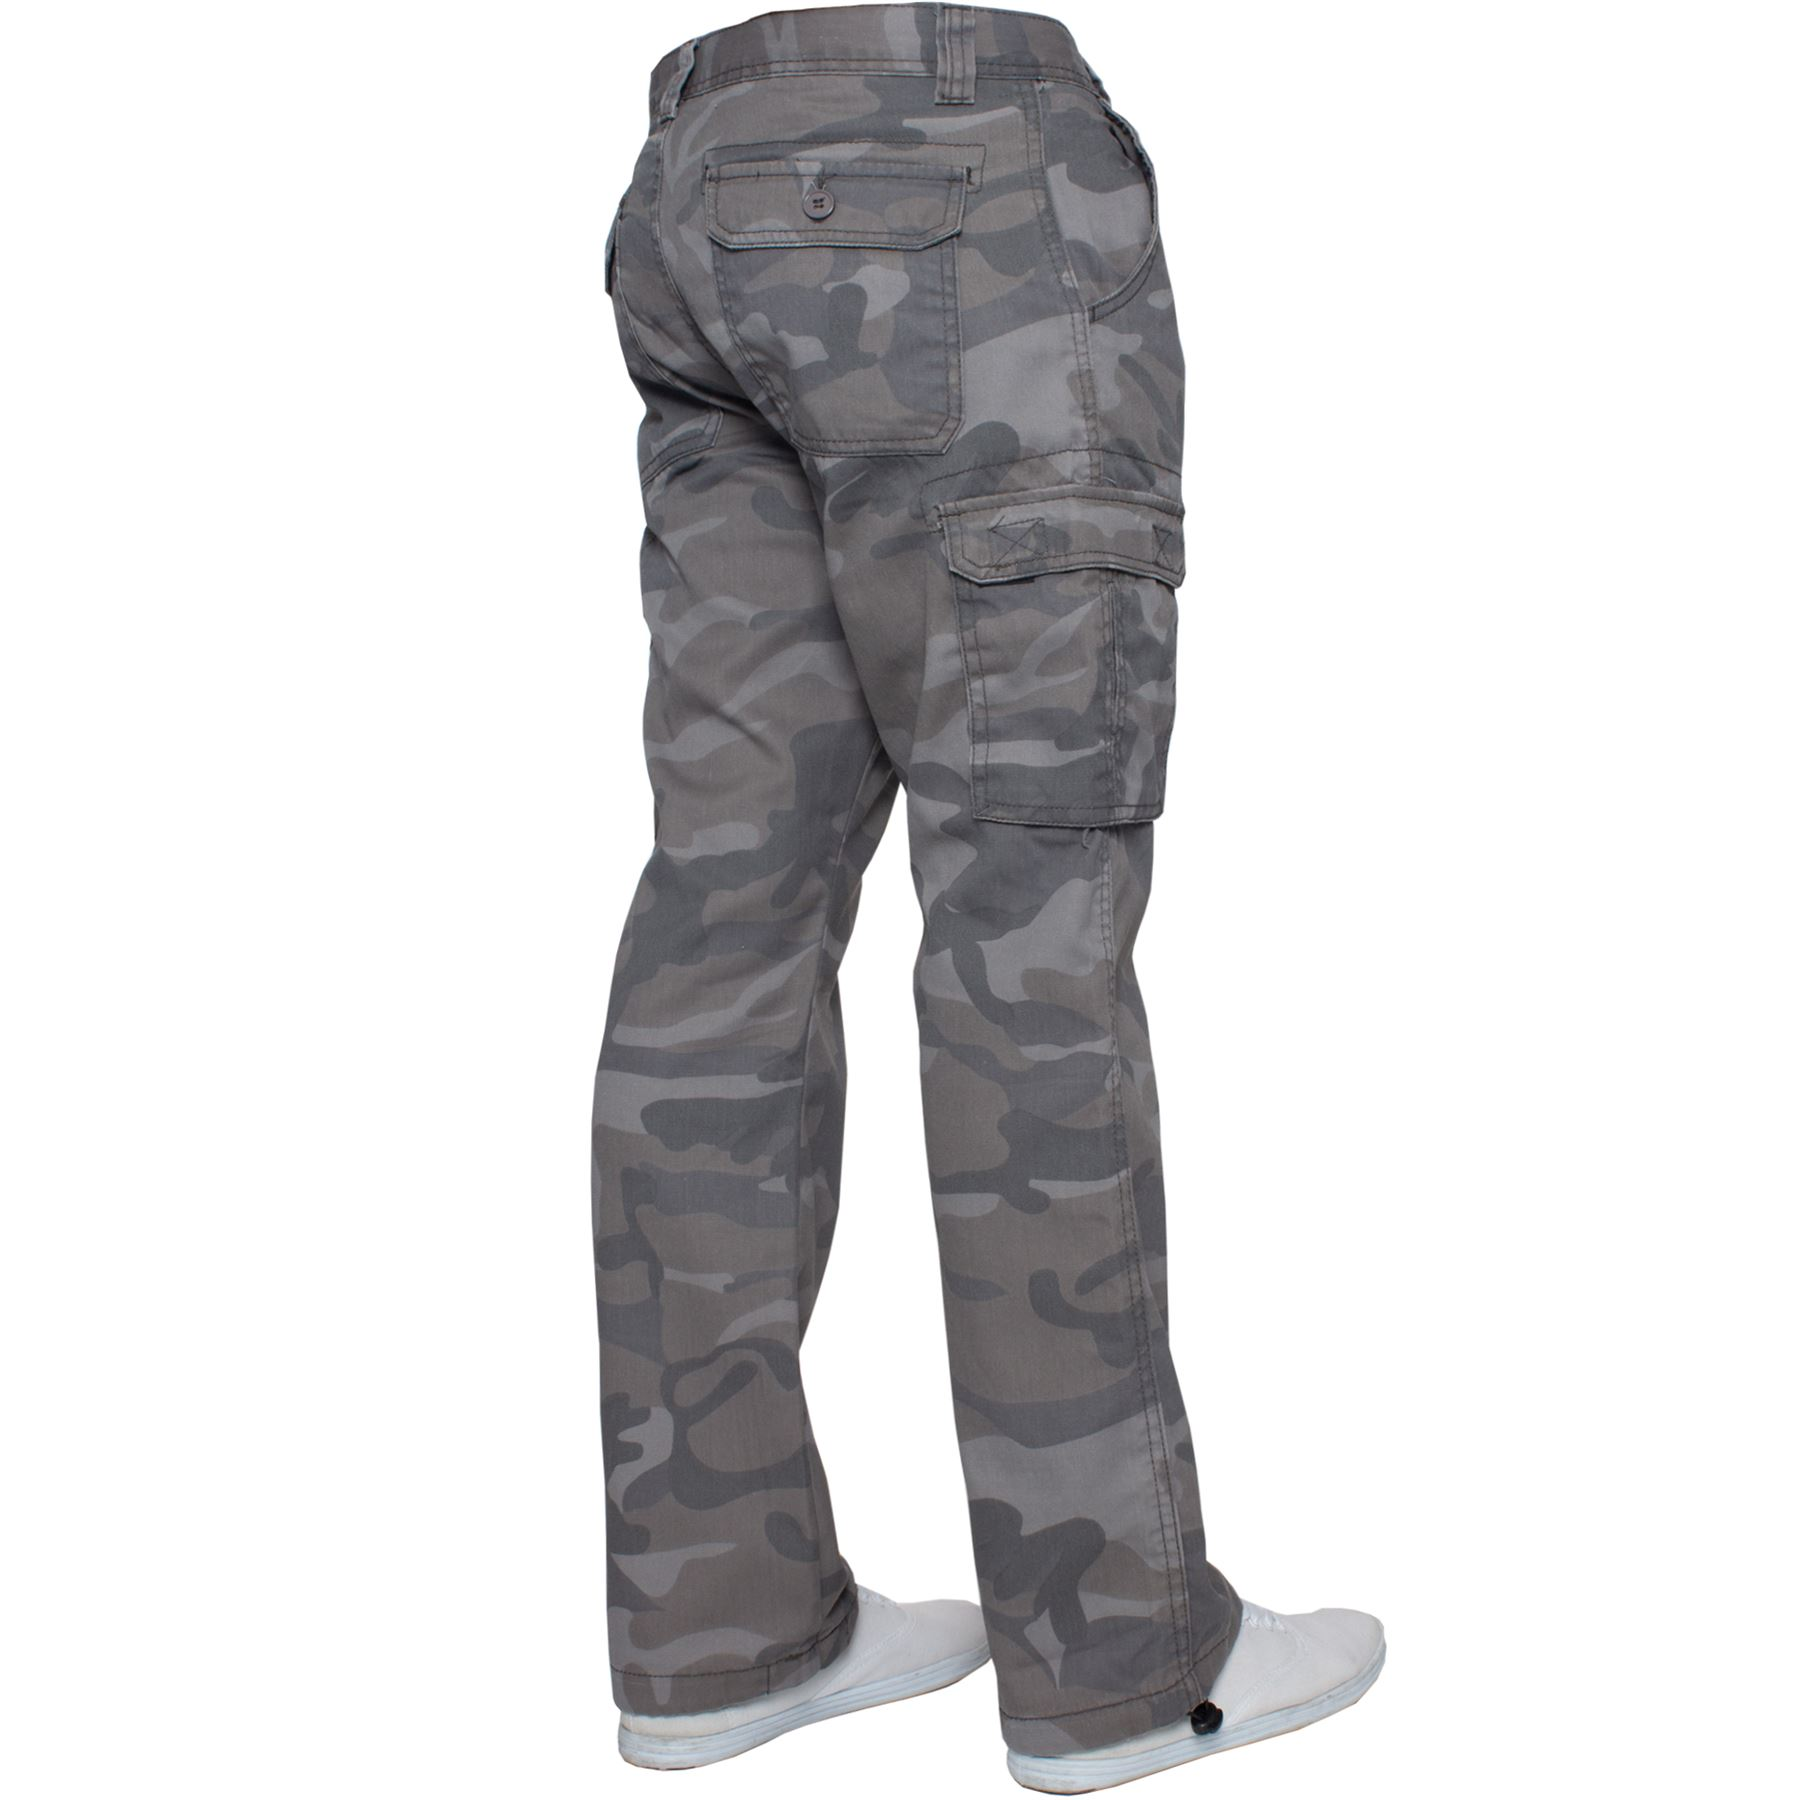 Kruze-Mens-Military-Combat-Trousers-Camouflage-Cargo-Camo-Army-Casual-Work-Pants miniatura 10